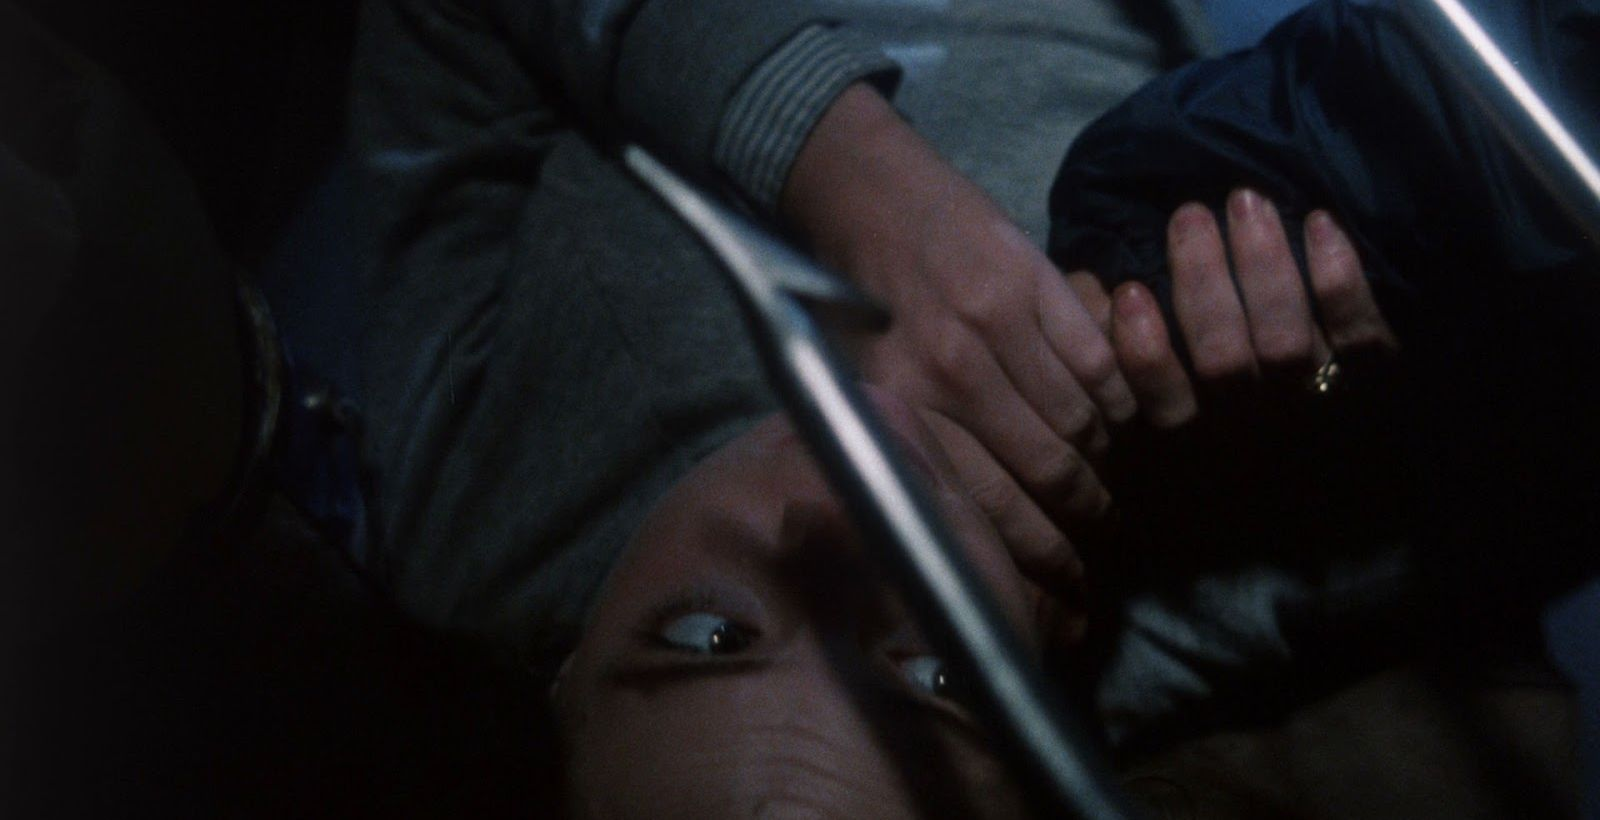 The Mutilator still